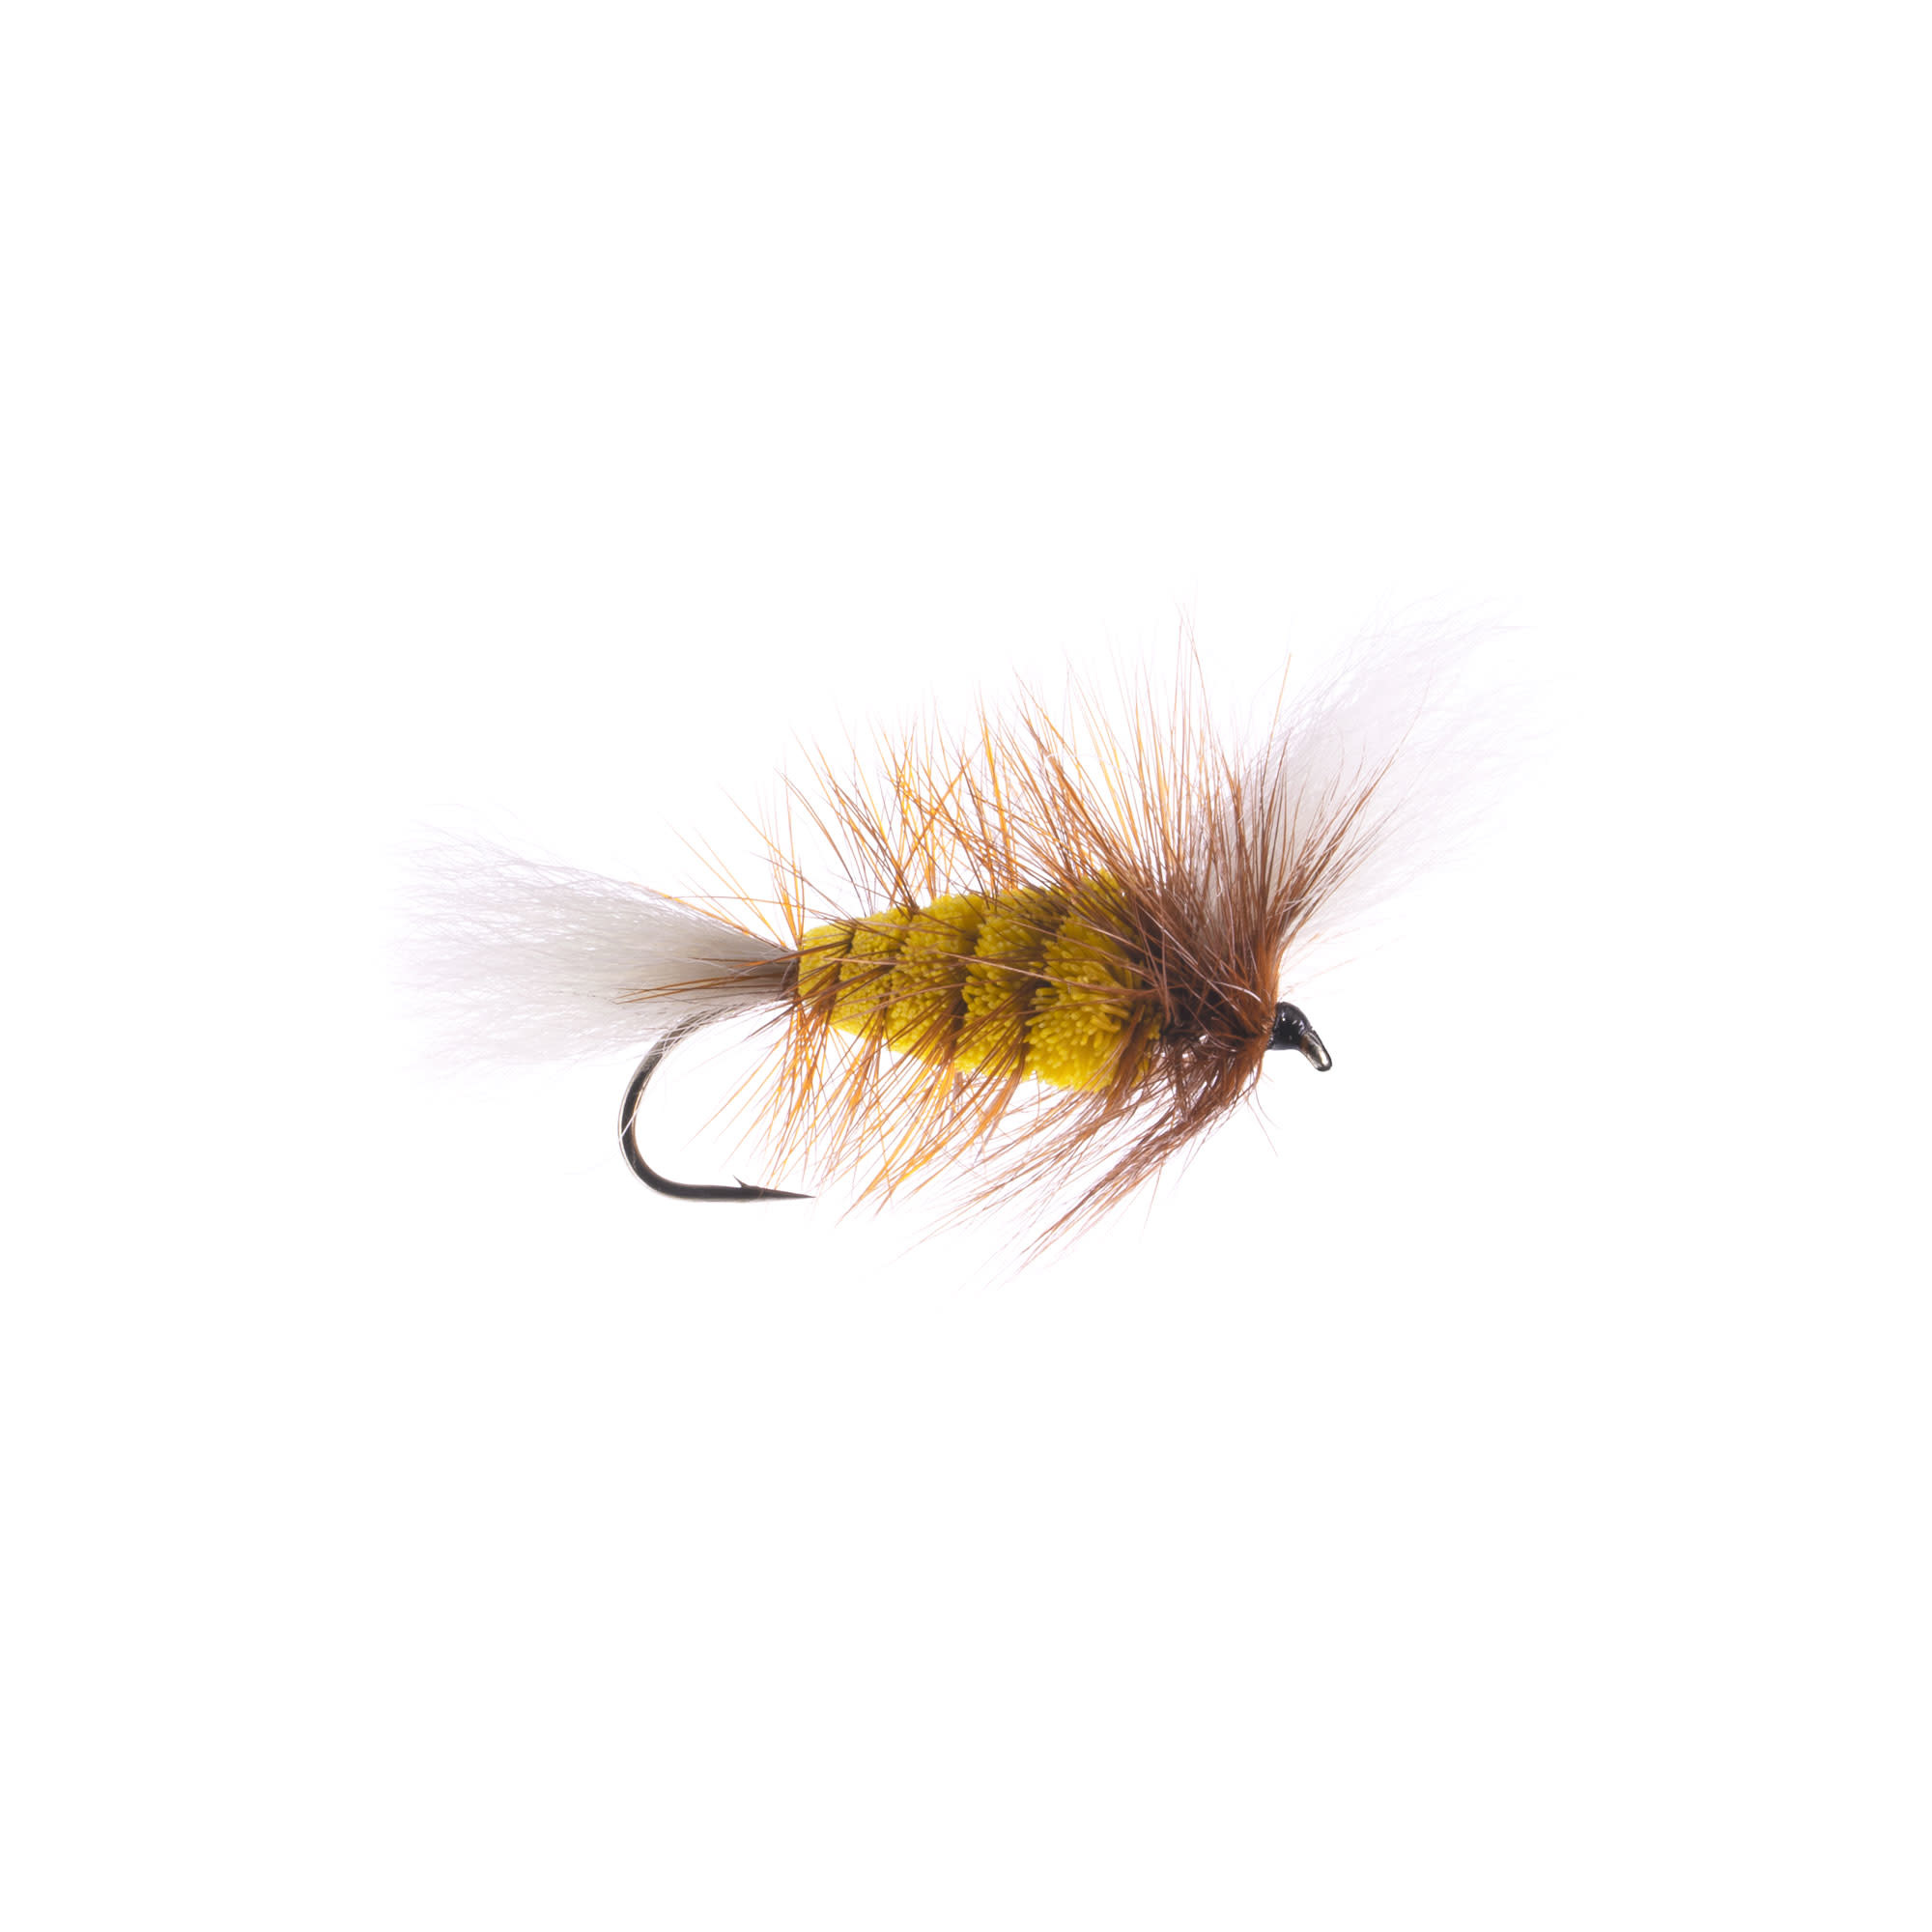 YELLOW-White Tail Brown Hackle ( Wulff Bomber) #4